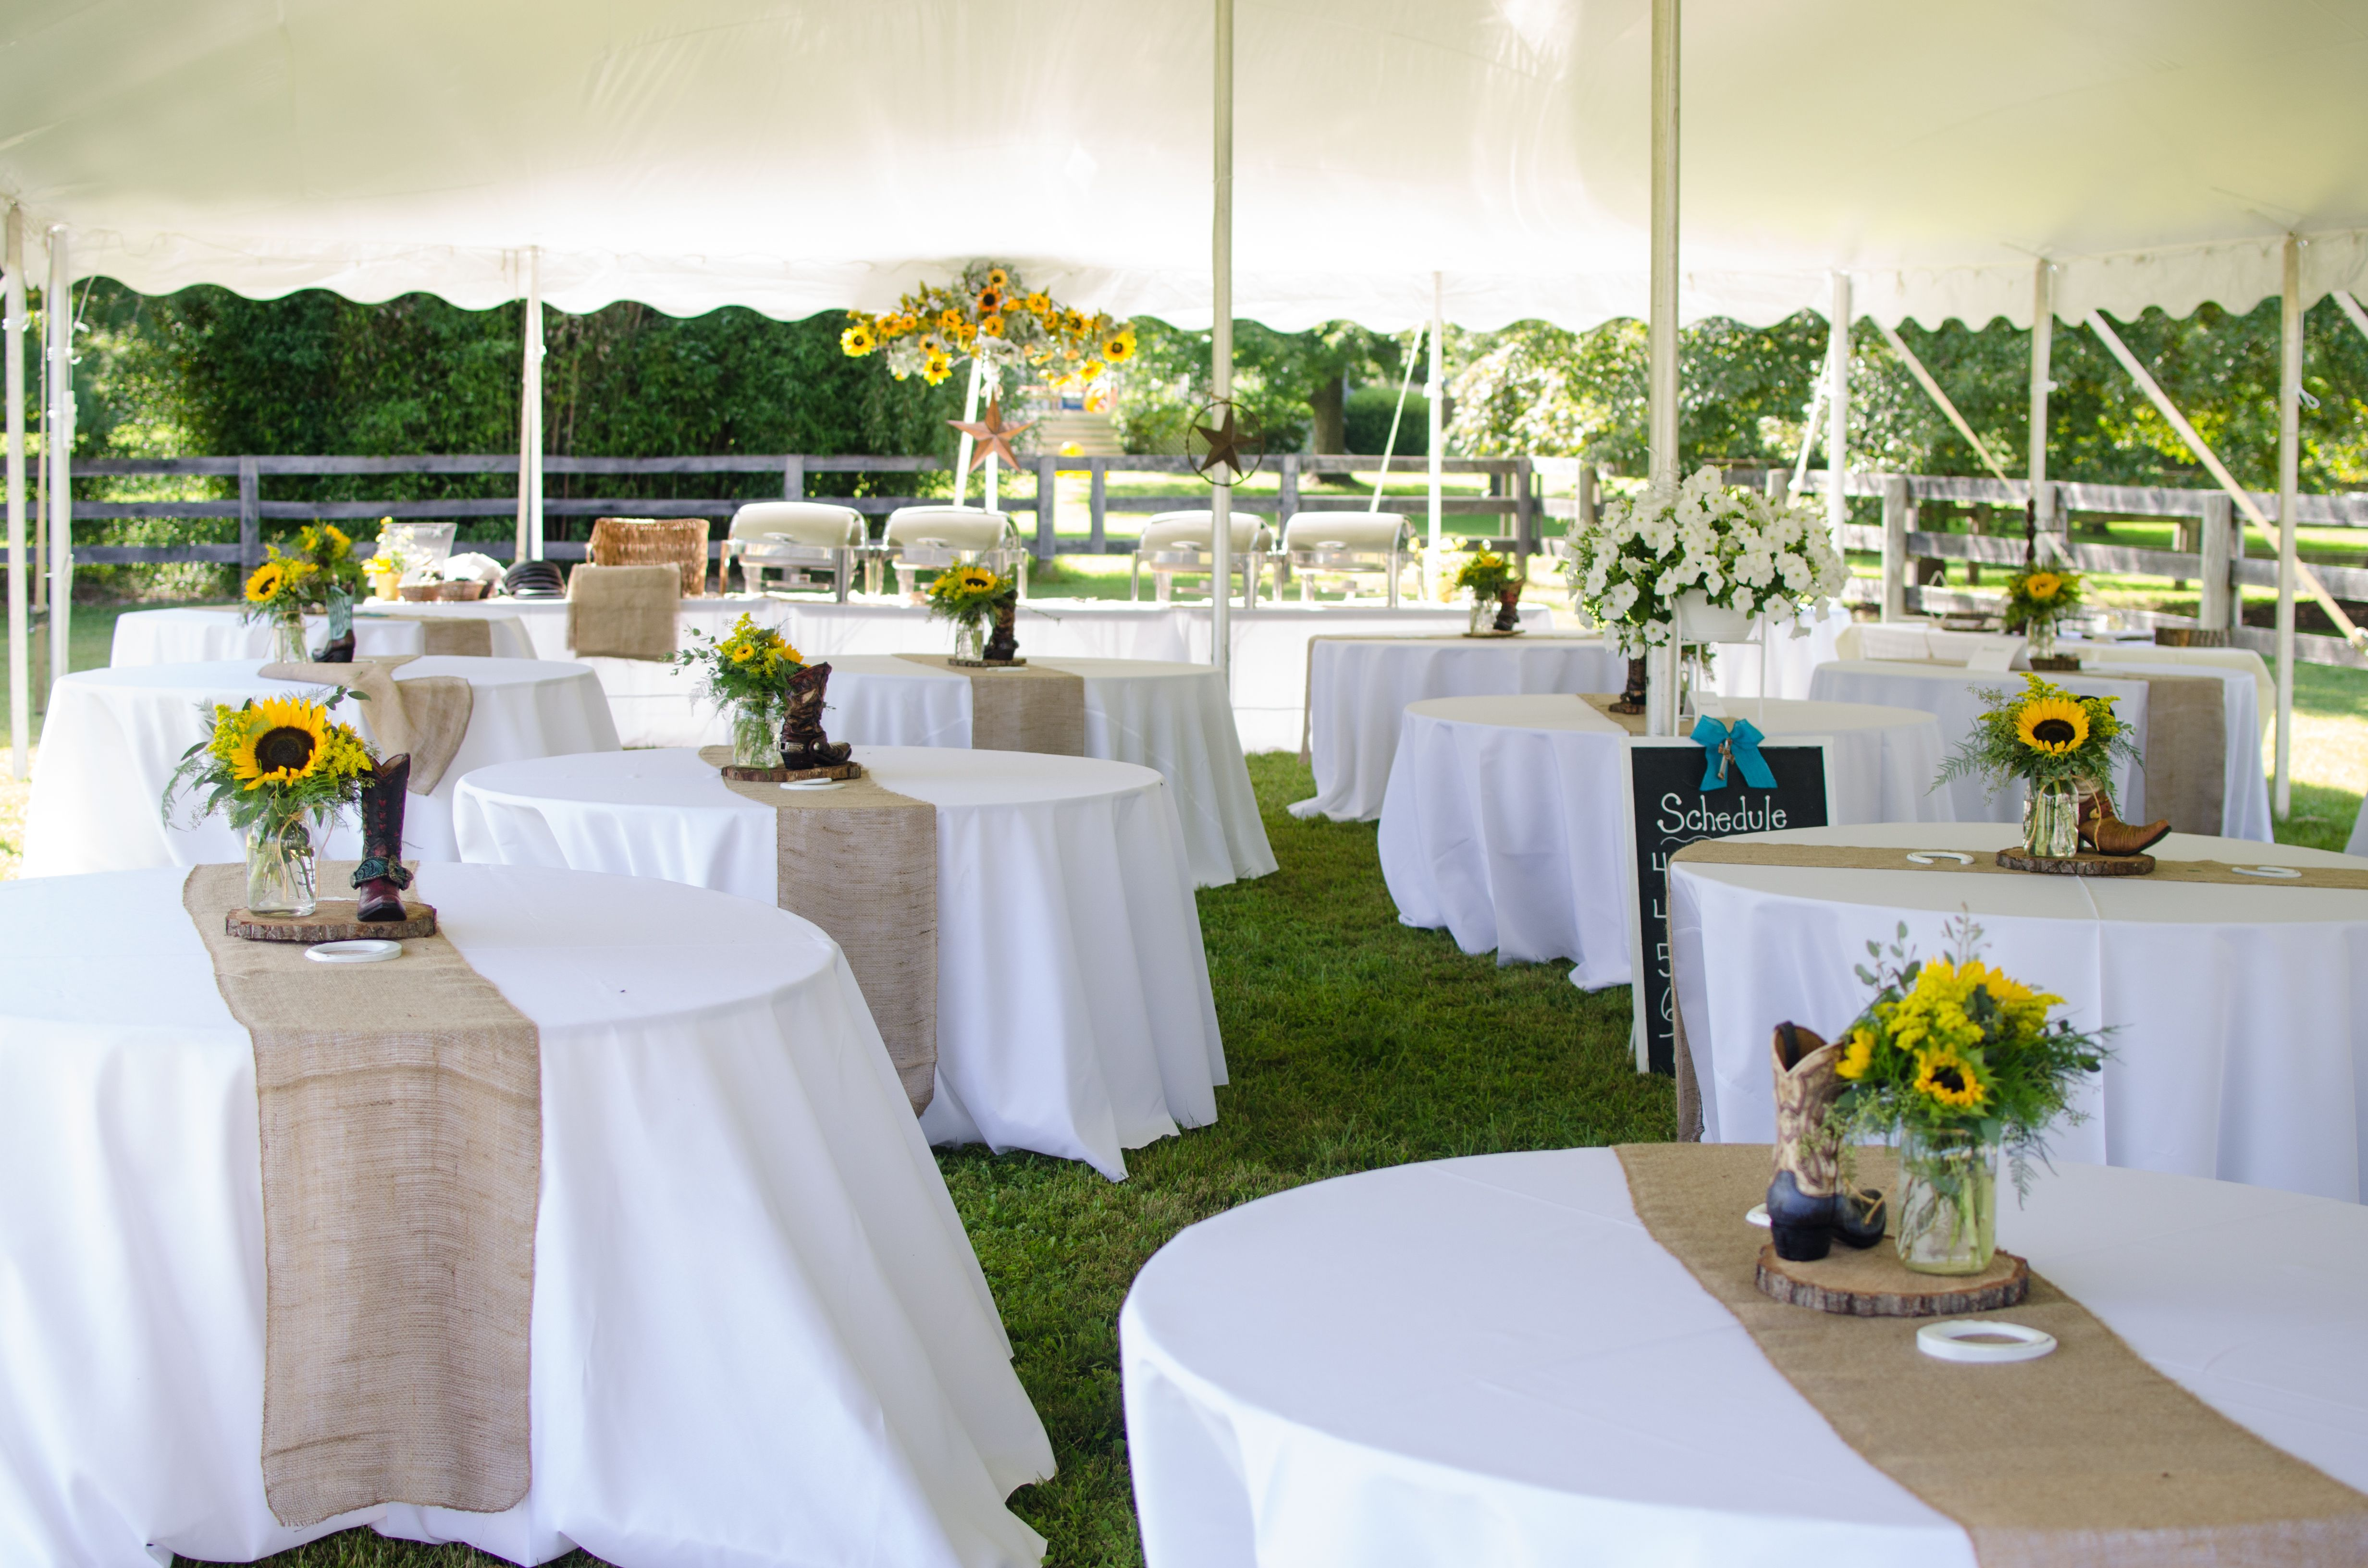 Tented Reception at Private Farm Wedding with Burlap Table Runners